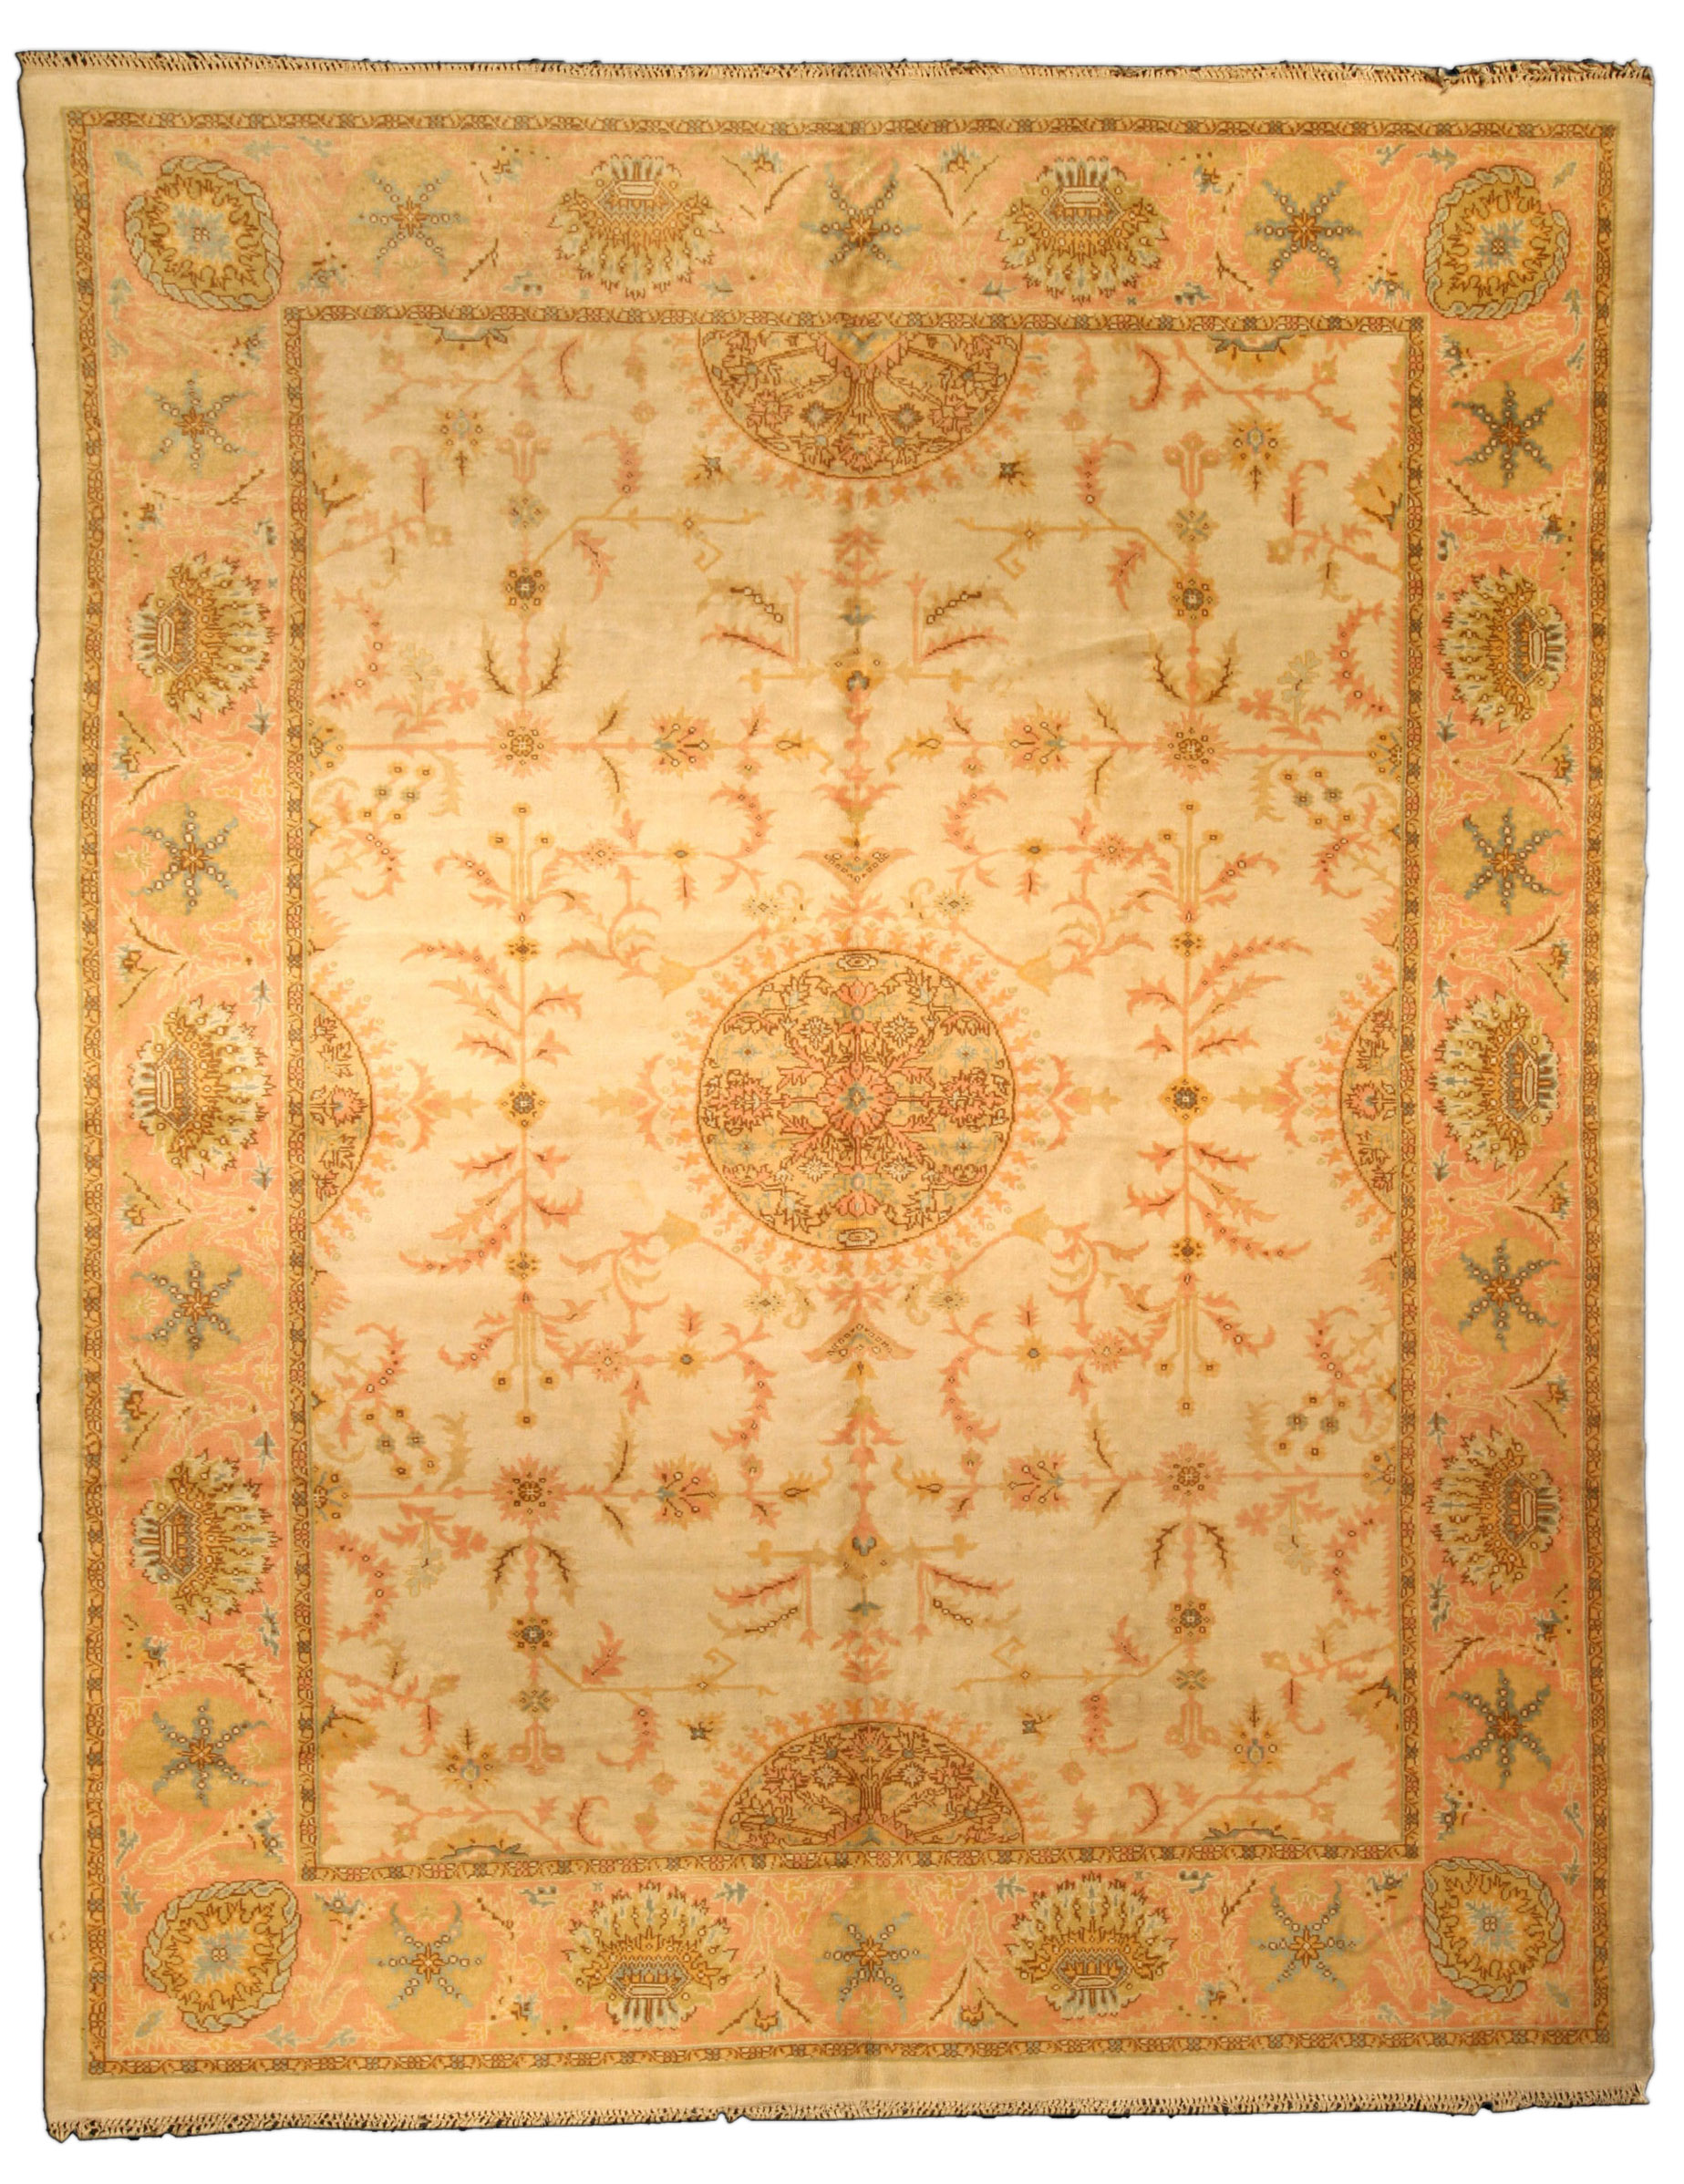 Vintage Turkish Oushak Carpet Bb2391 By Doris Leslie Blau